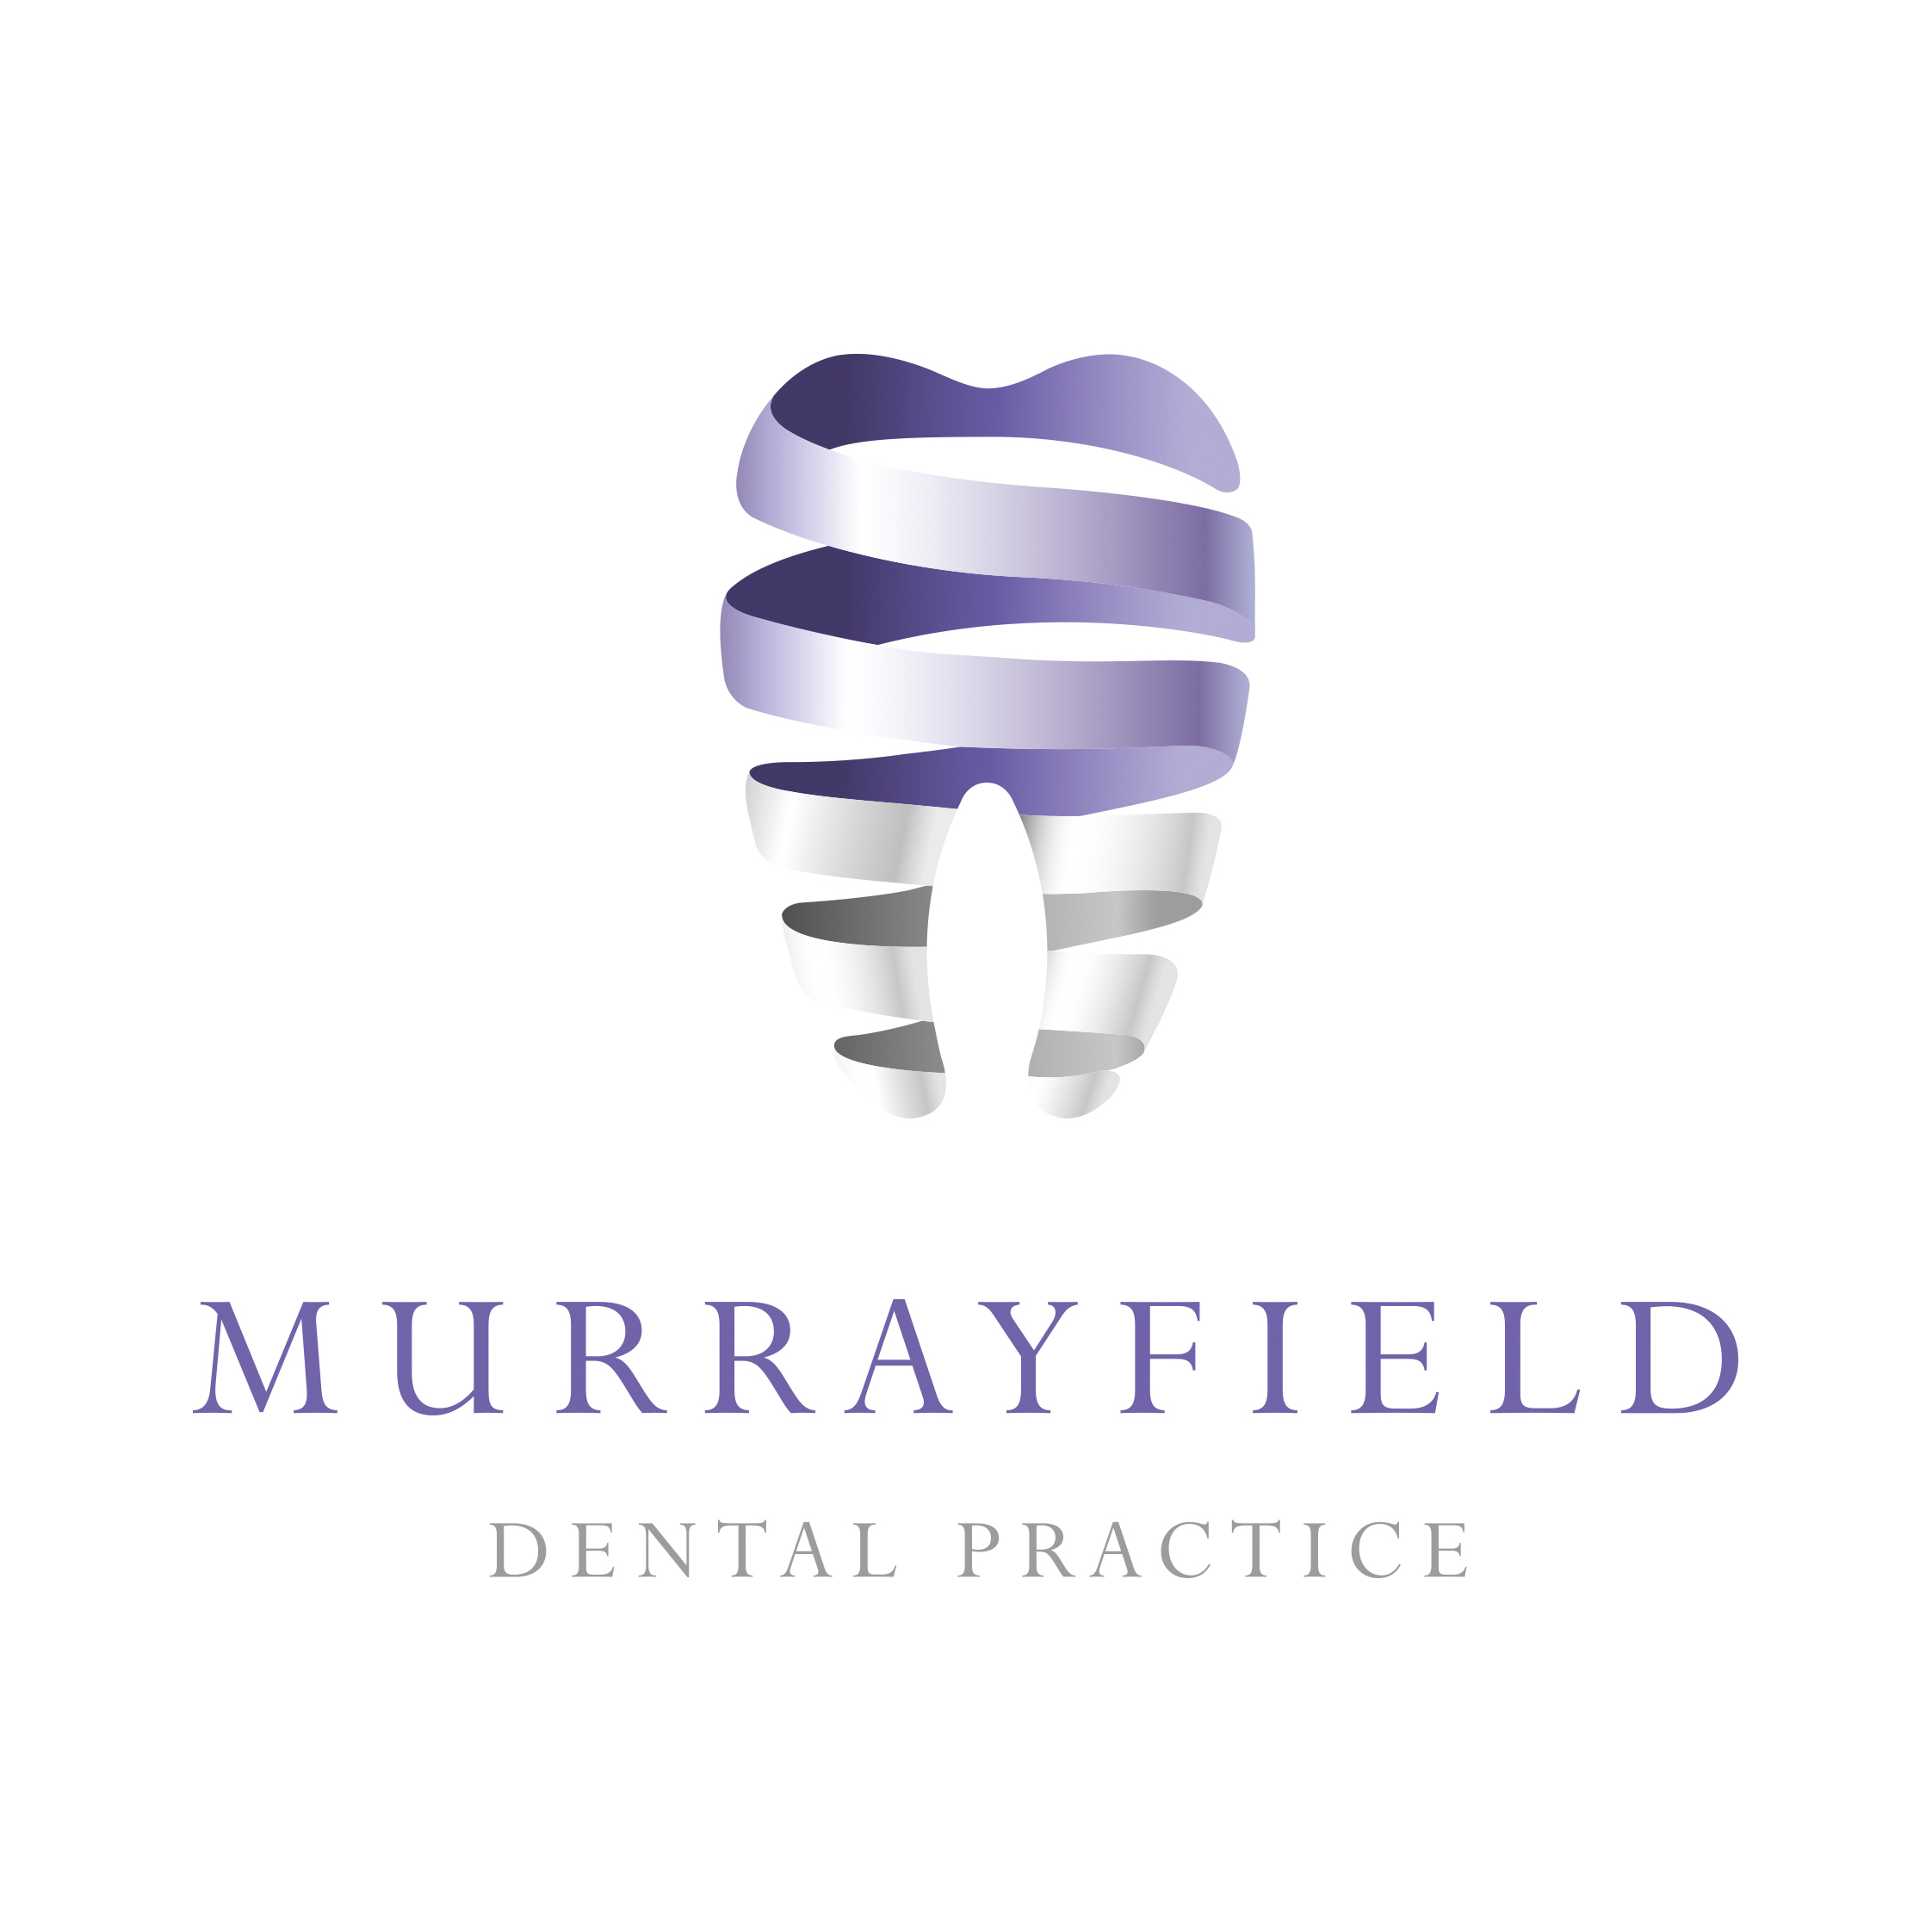 Murrayfield Dental Practice Logo